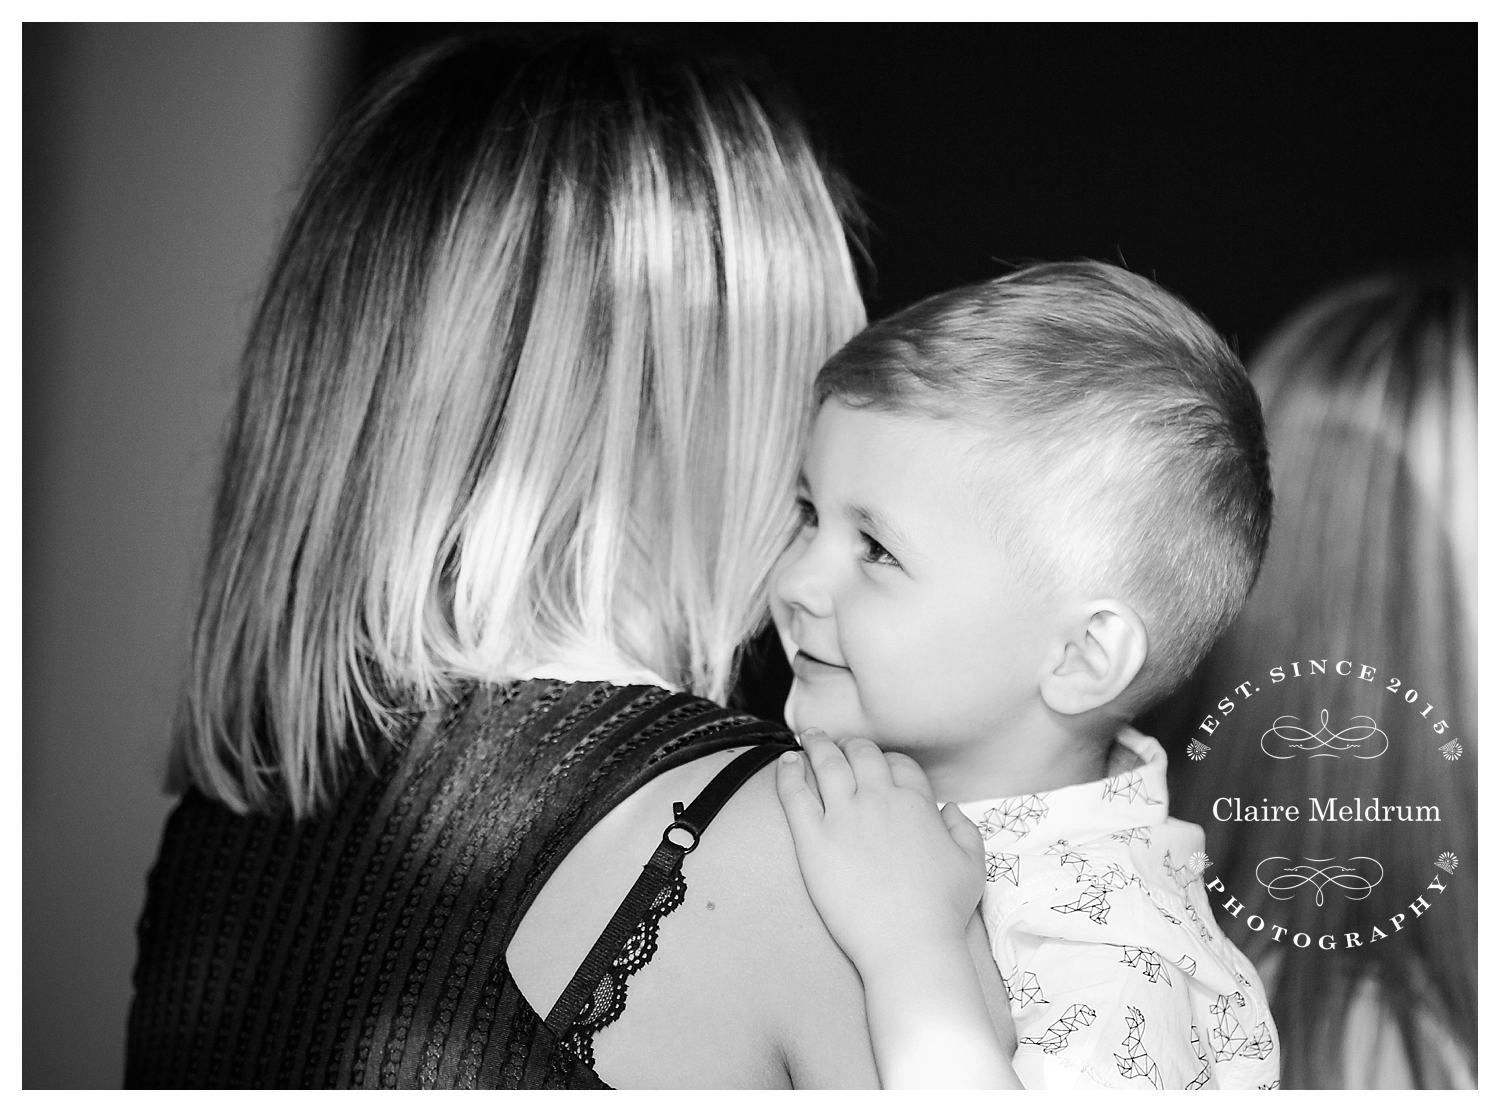 Mum and son, relaxed event photography Bradley House Club Uttoxeter. Claire Meldrum Photography